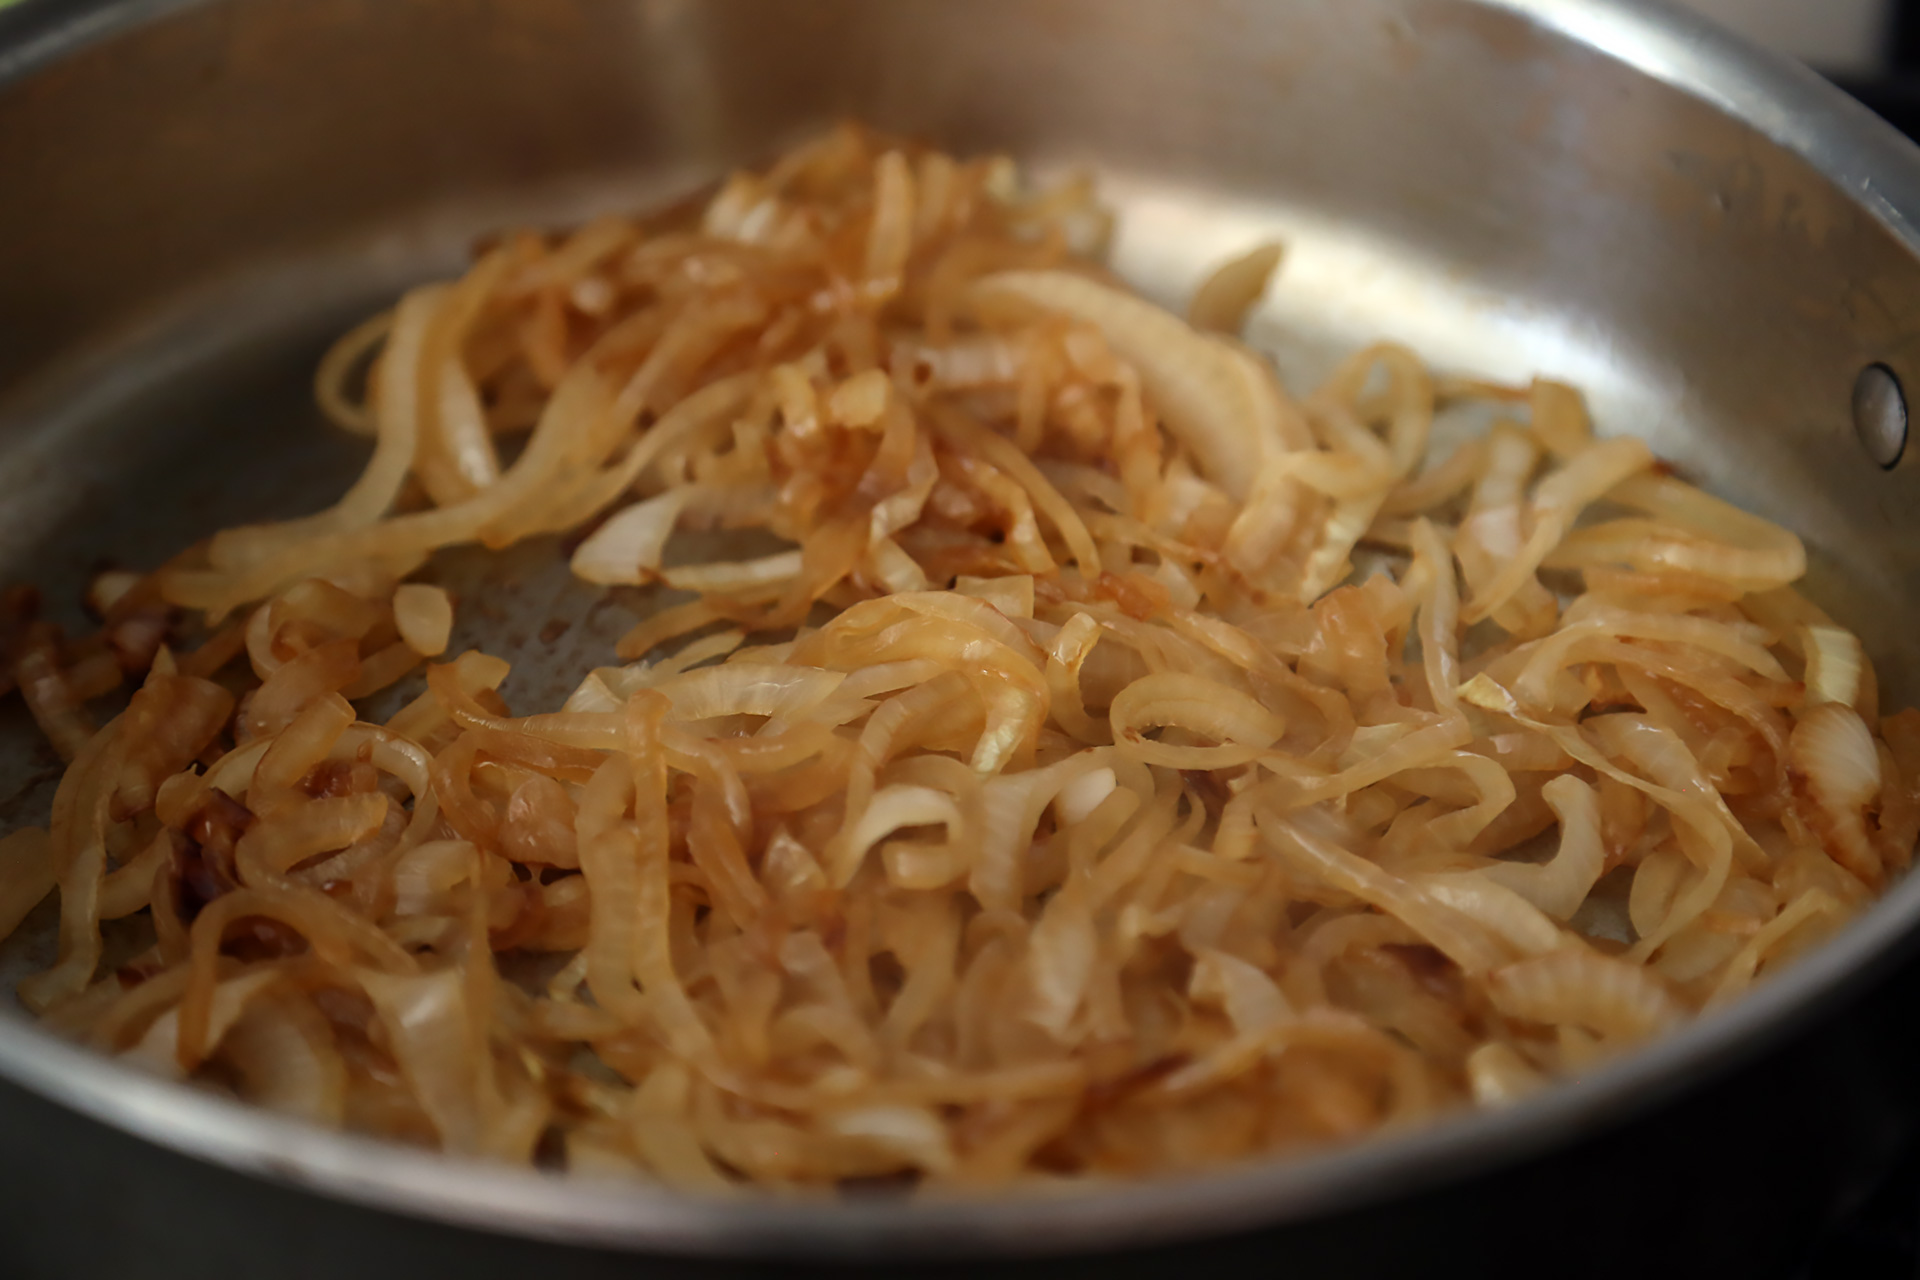 In a large saute pan over medium heat, warm the oil. Add the onions and a pinch of salt and cook, stirring, until they start to caramelize, about 15 minutes. Transfer to a bowl.